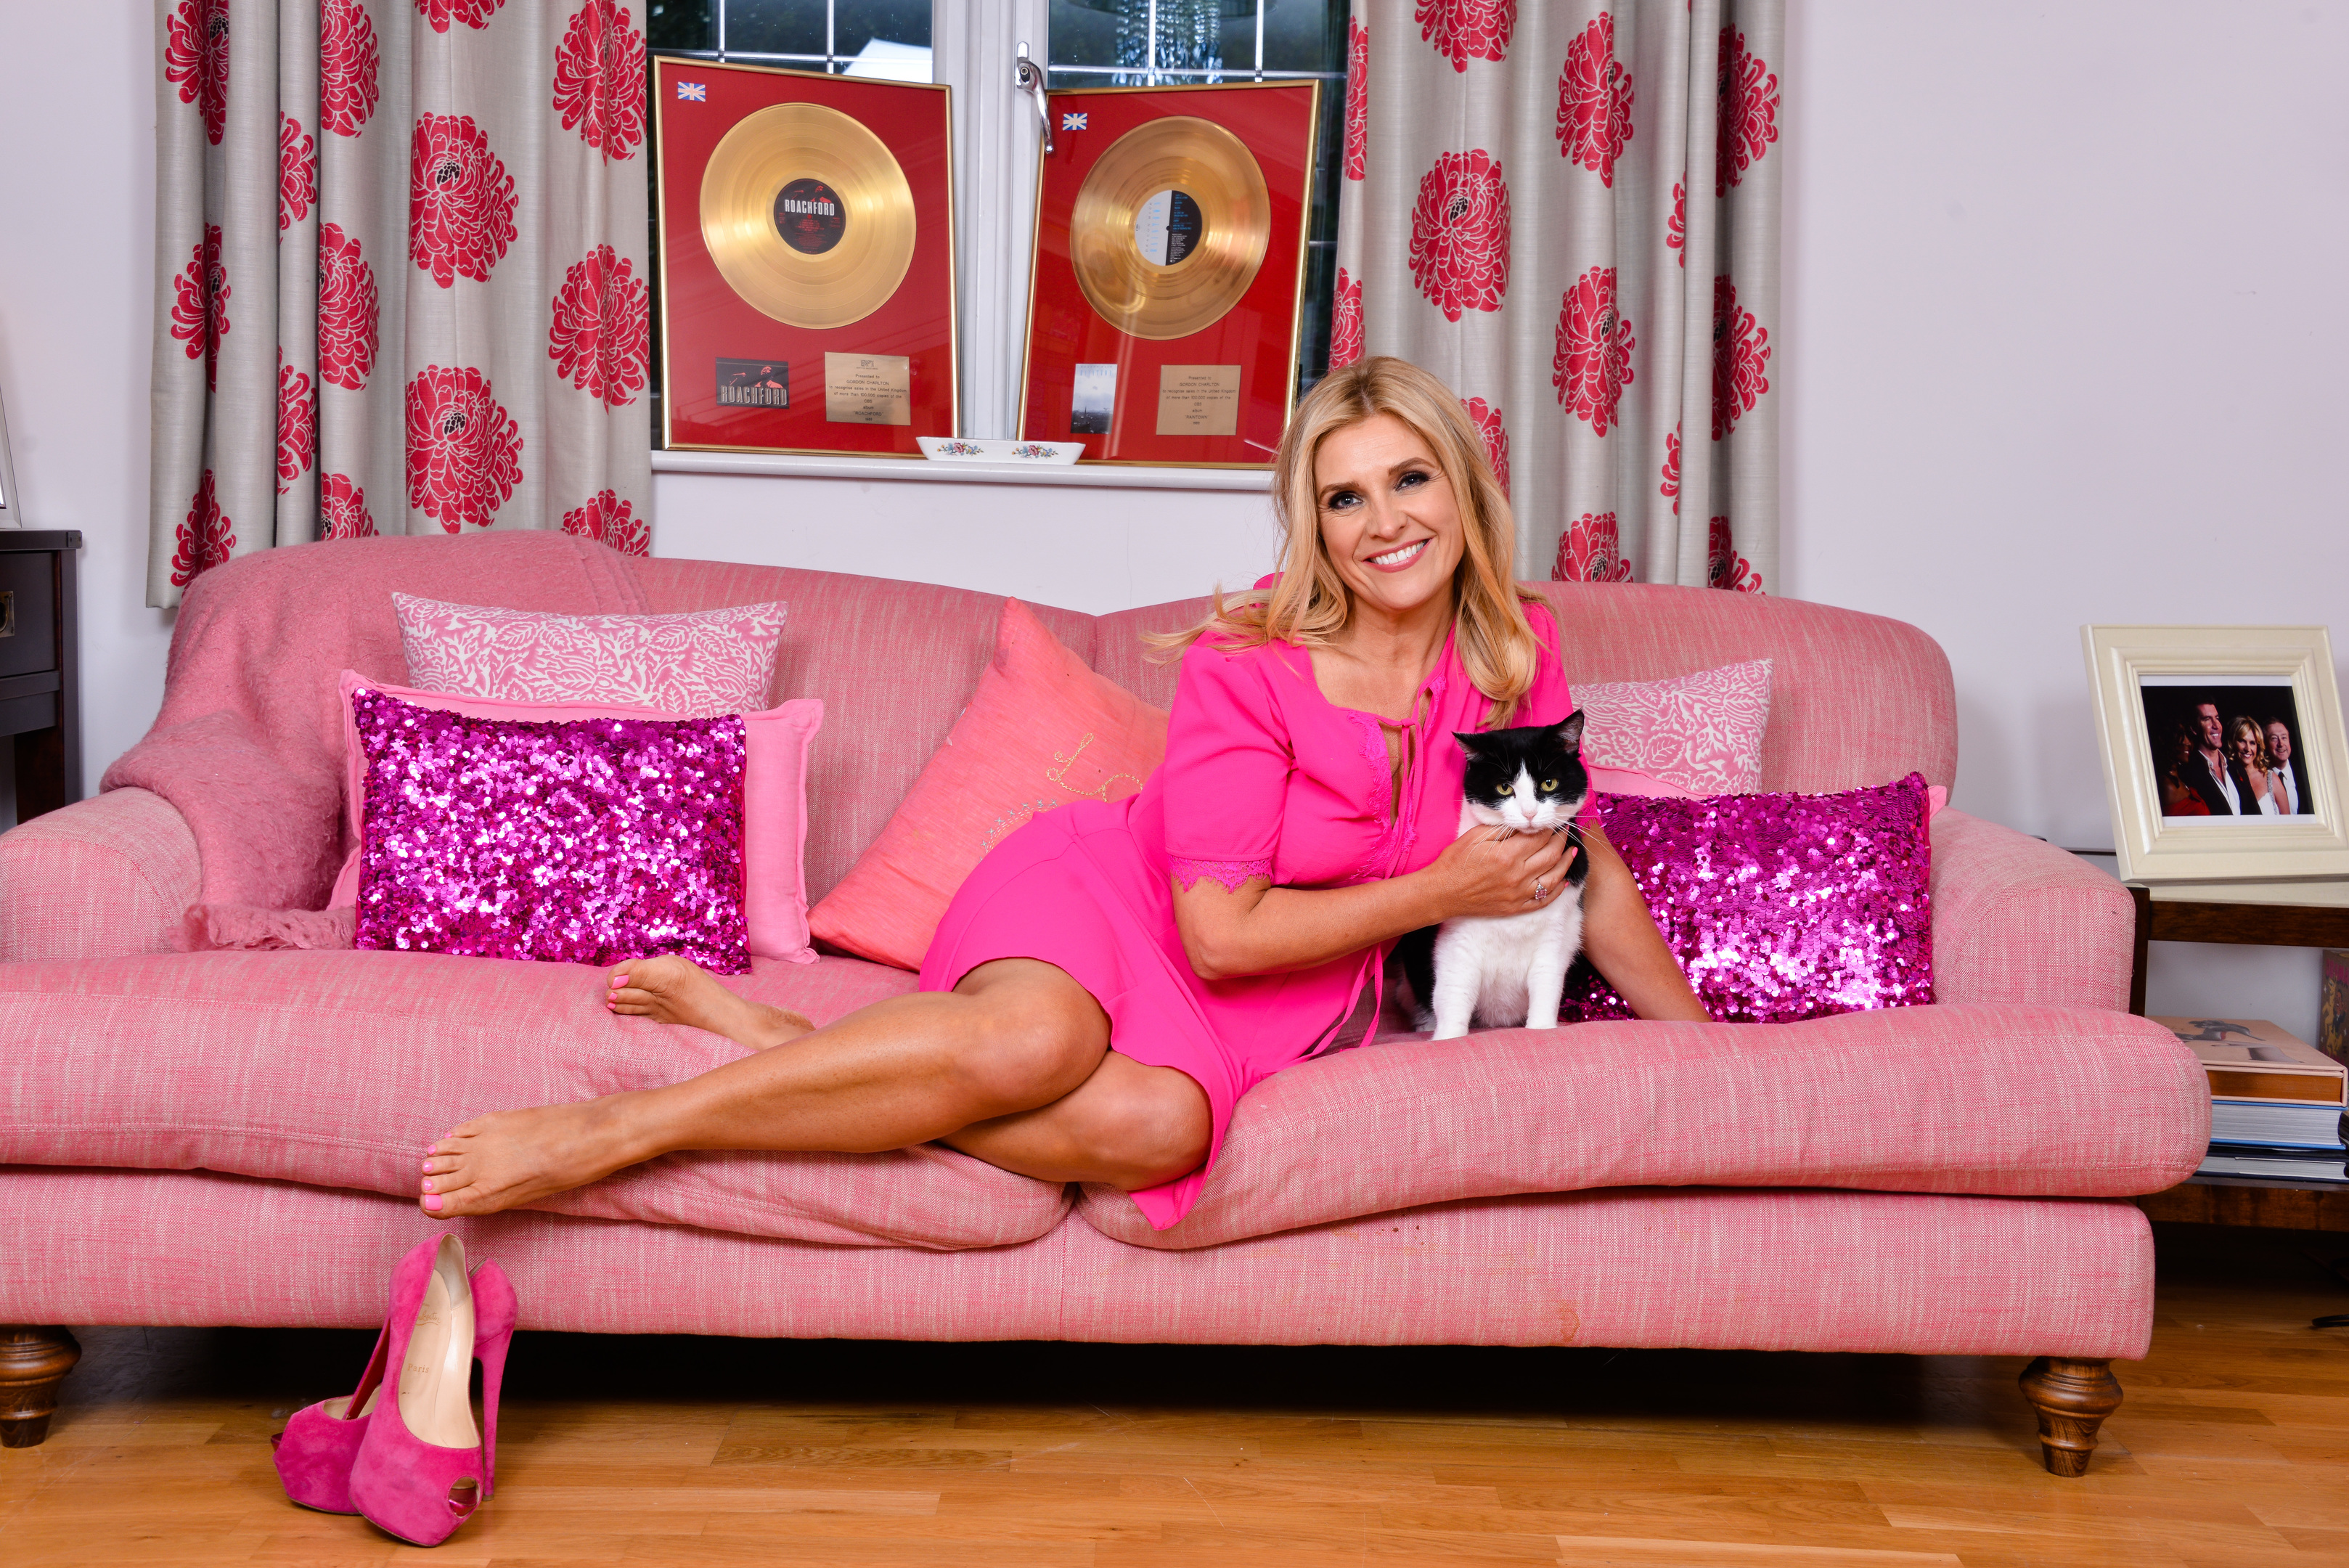 Yvie Burnett at home in Bedfordshire (Mike Lawn)